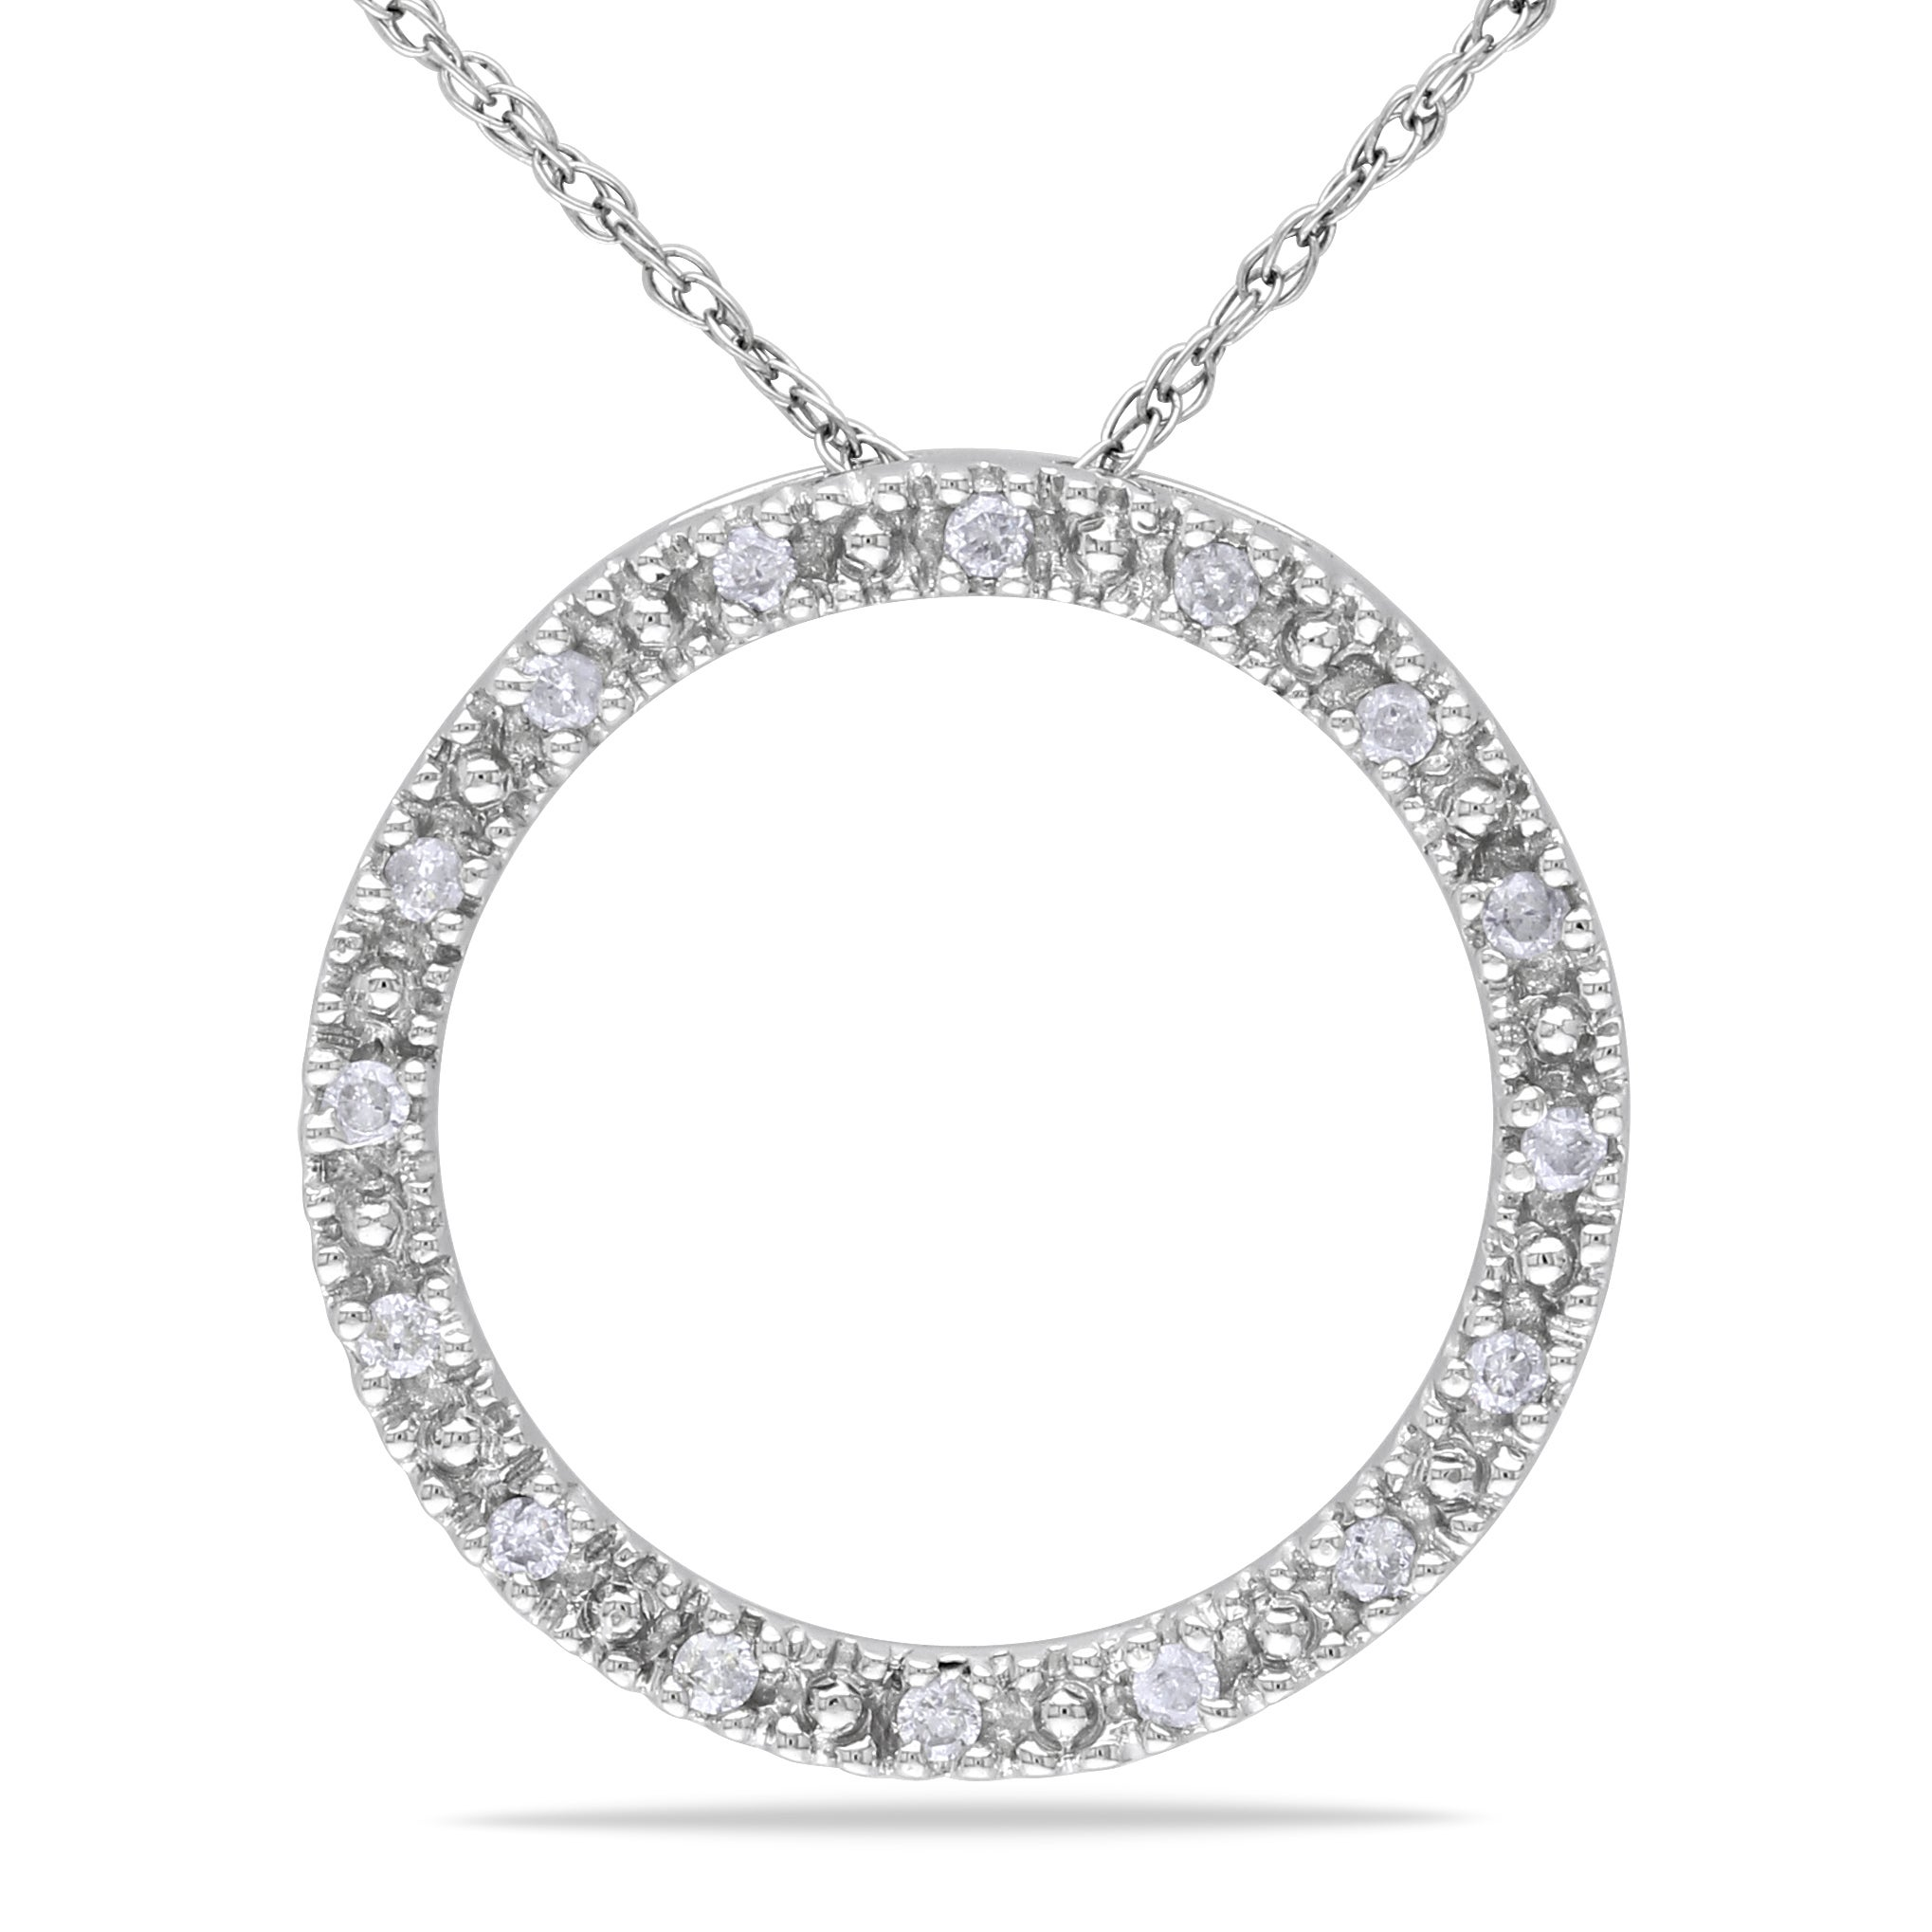 Miadora 10k White Gold 1/10ct TDW Diamond Circle Necklace (G-H, I1-I2)